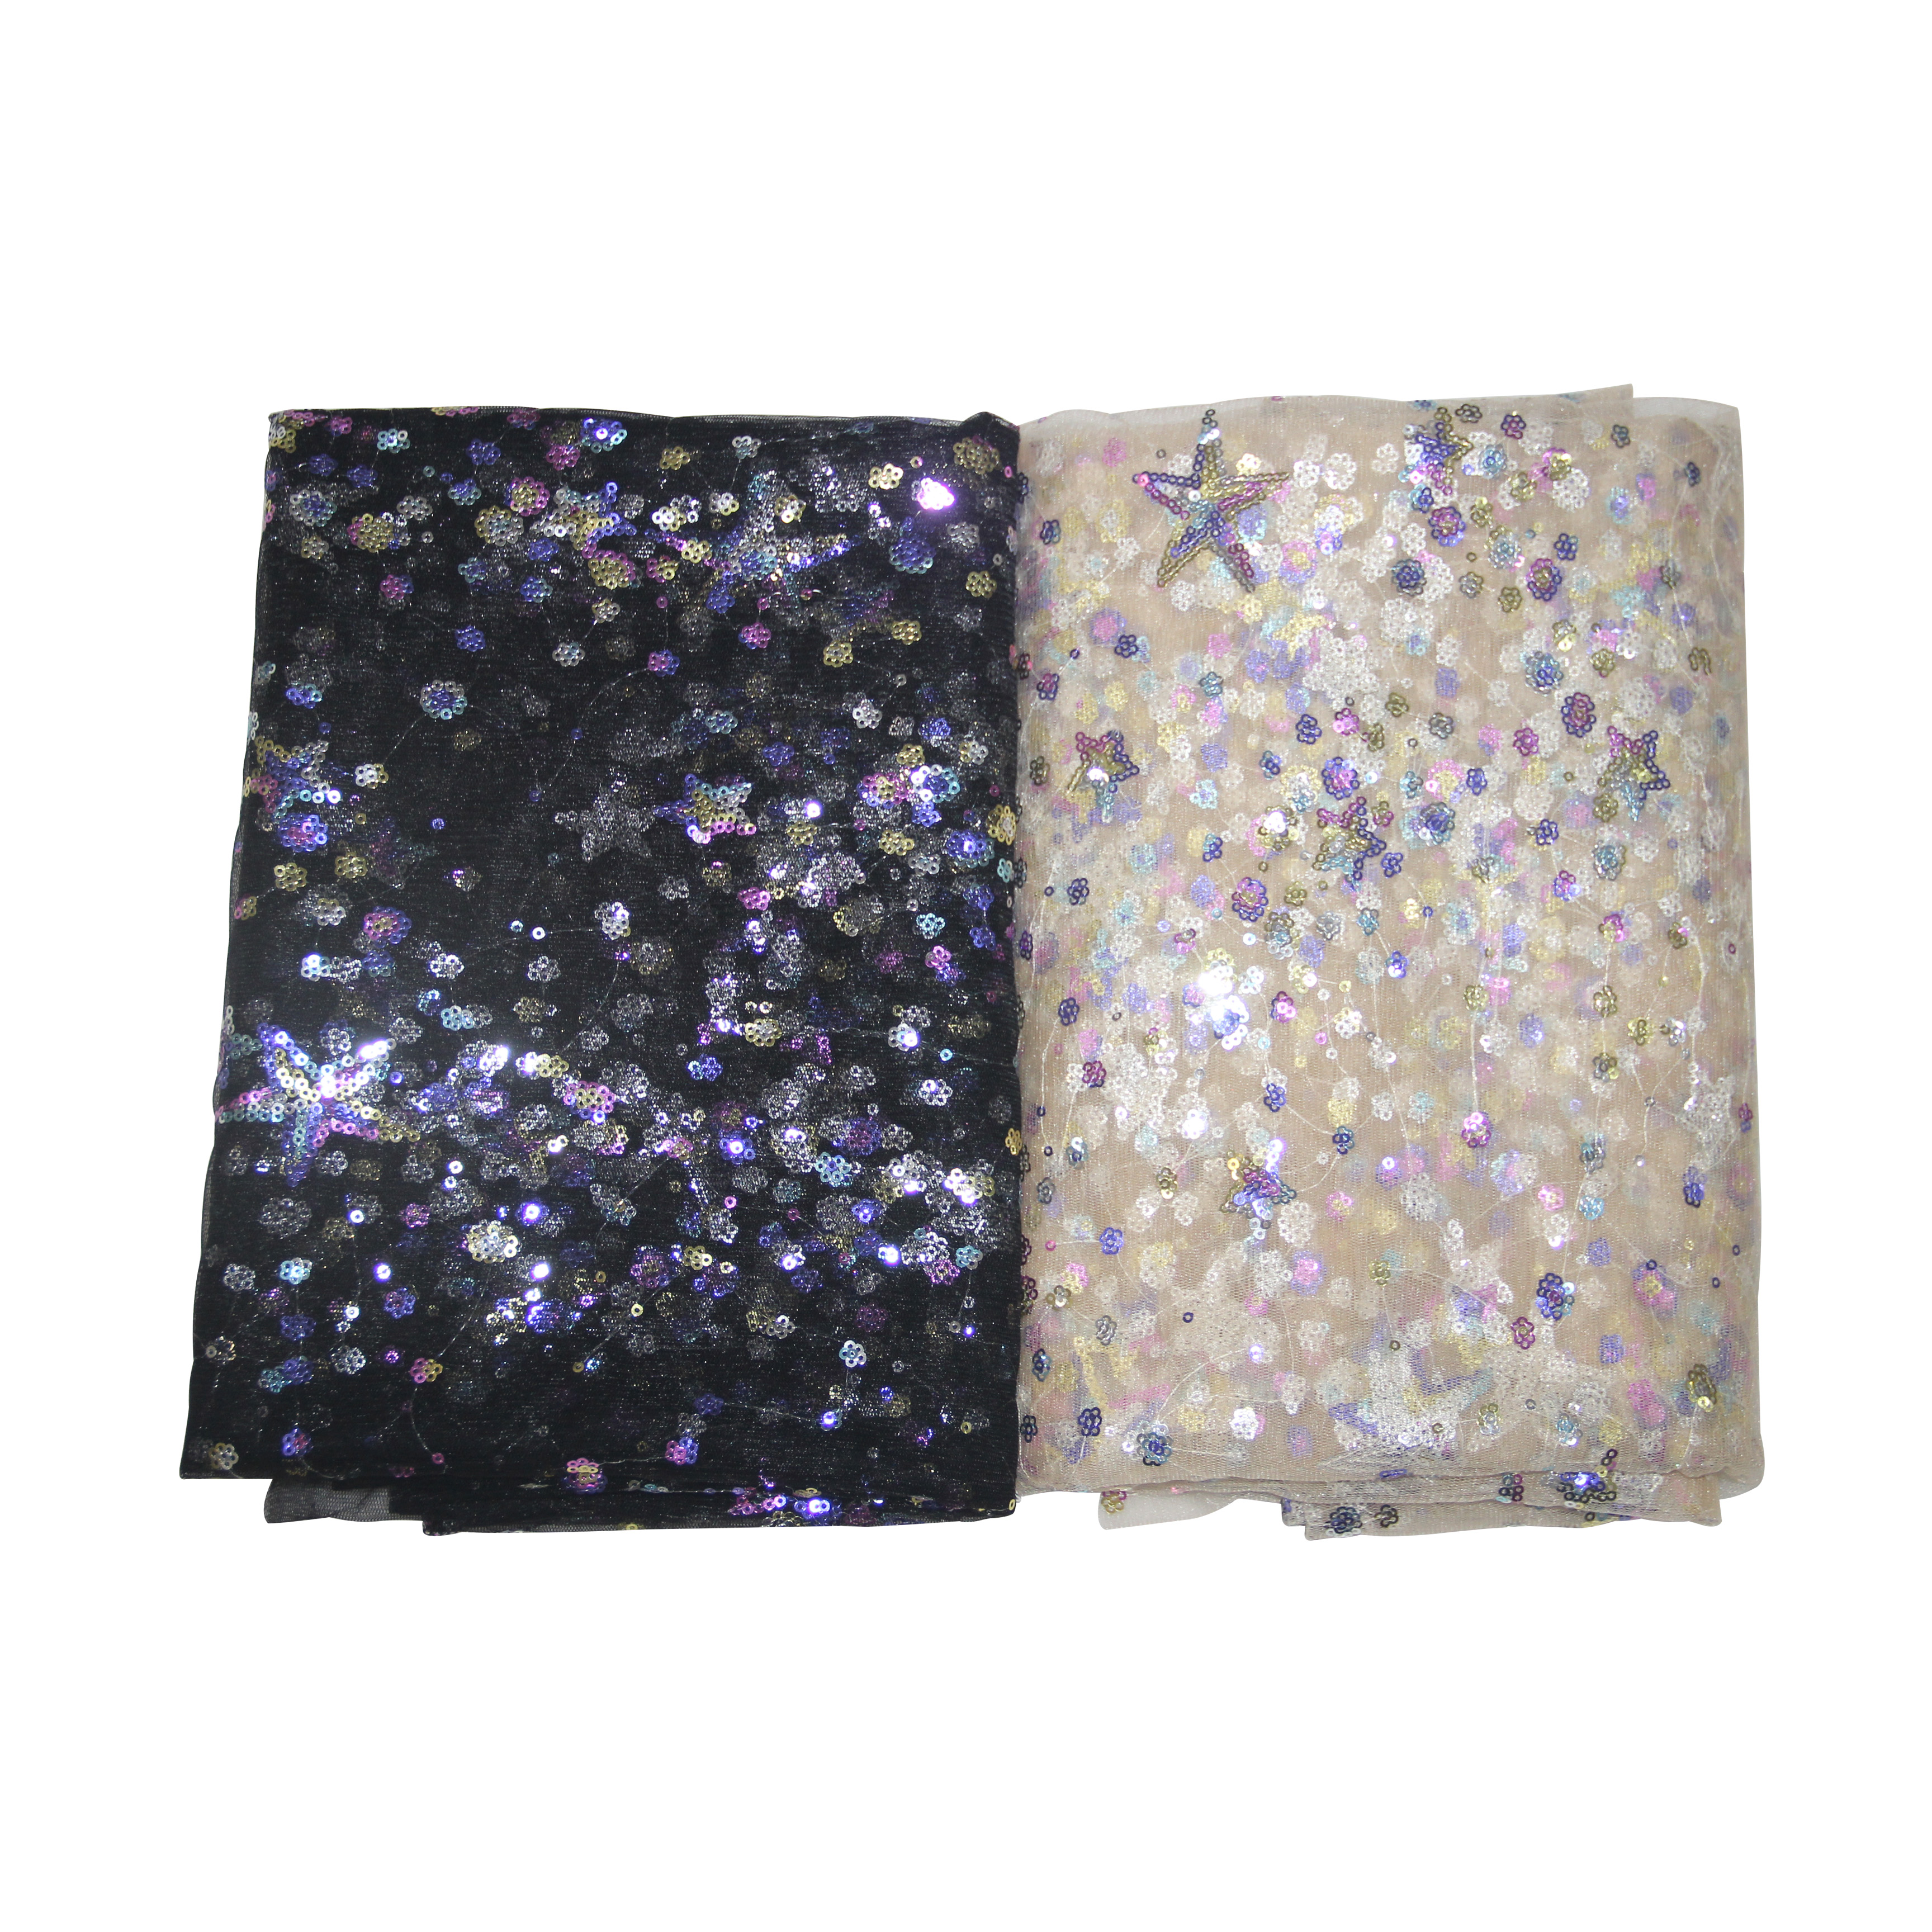 3meters Colorful Sequins Embroidered Soft Mesh Tulle Fabric Black And Gold Color Accessory For DIY Wedding Tutu Dress